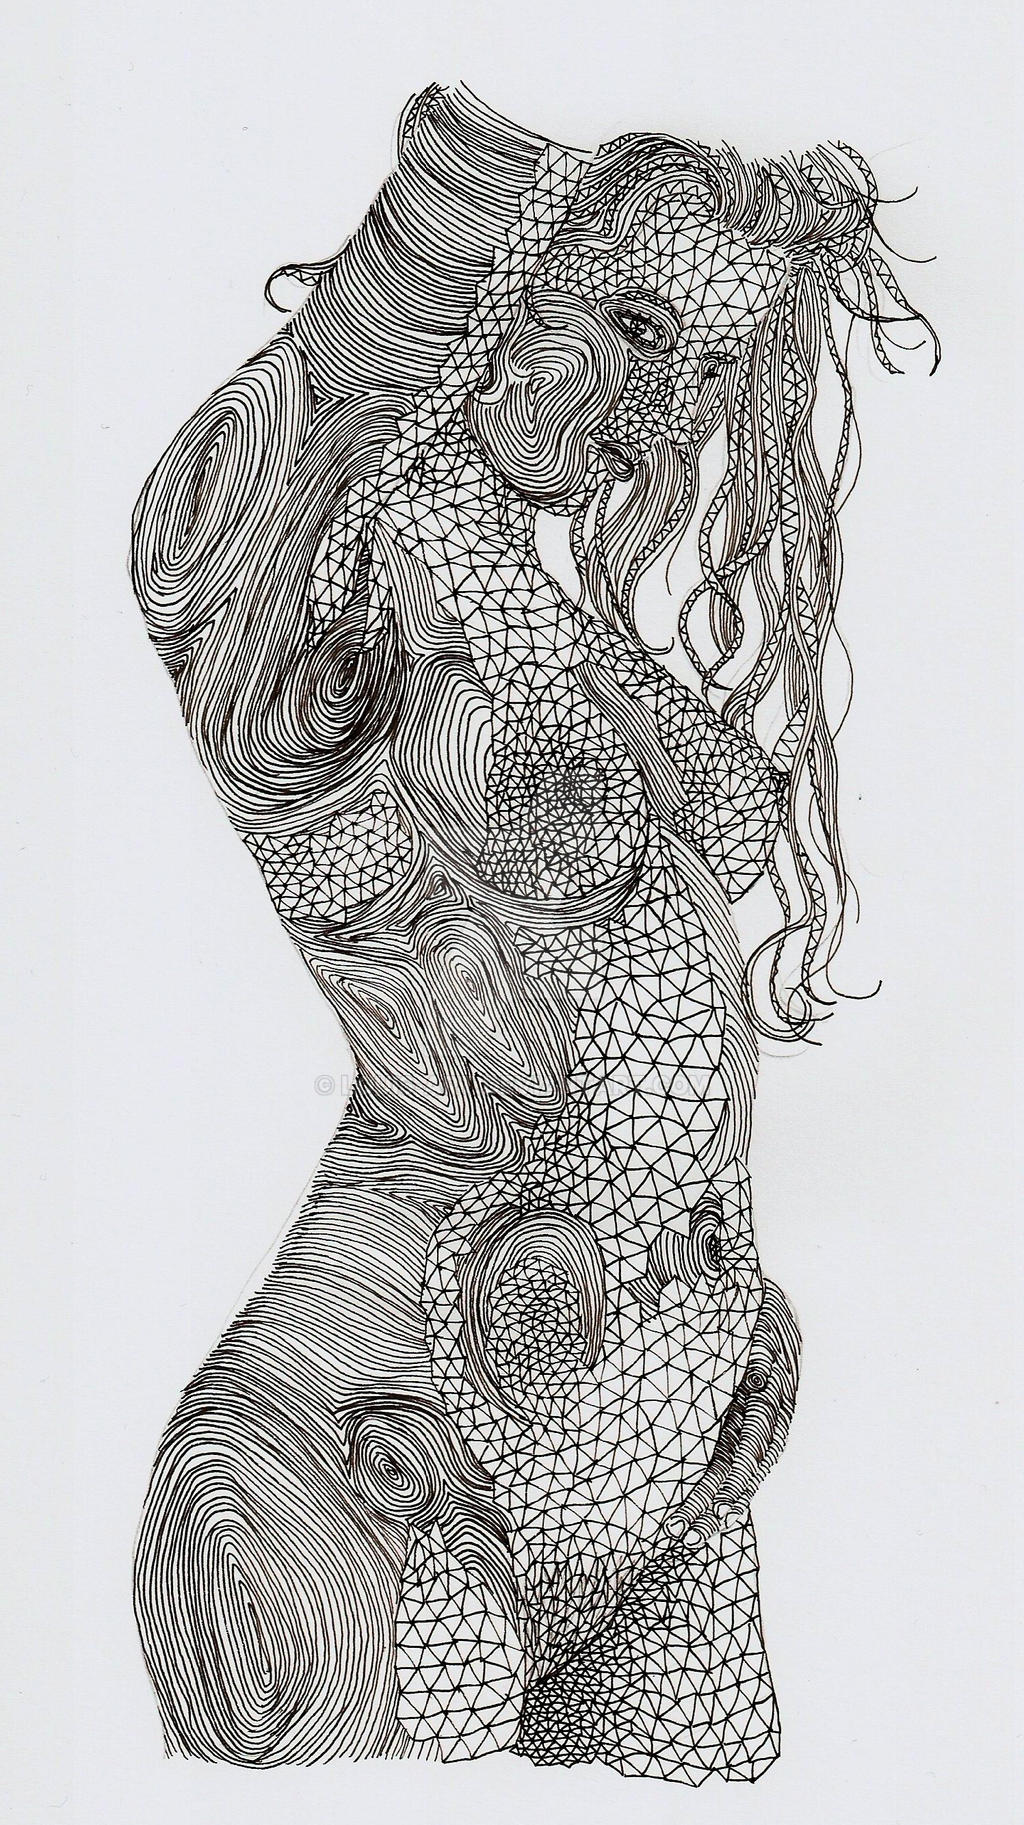 Line Drawing Female Body : Curves xiii by louis art on deviantart